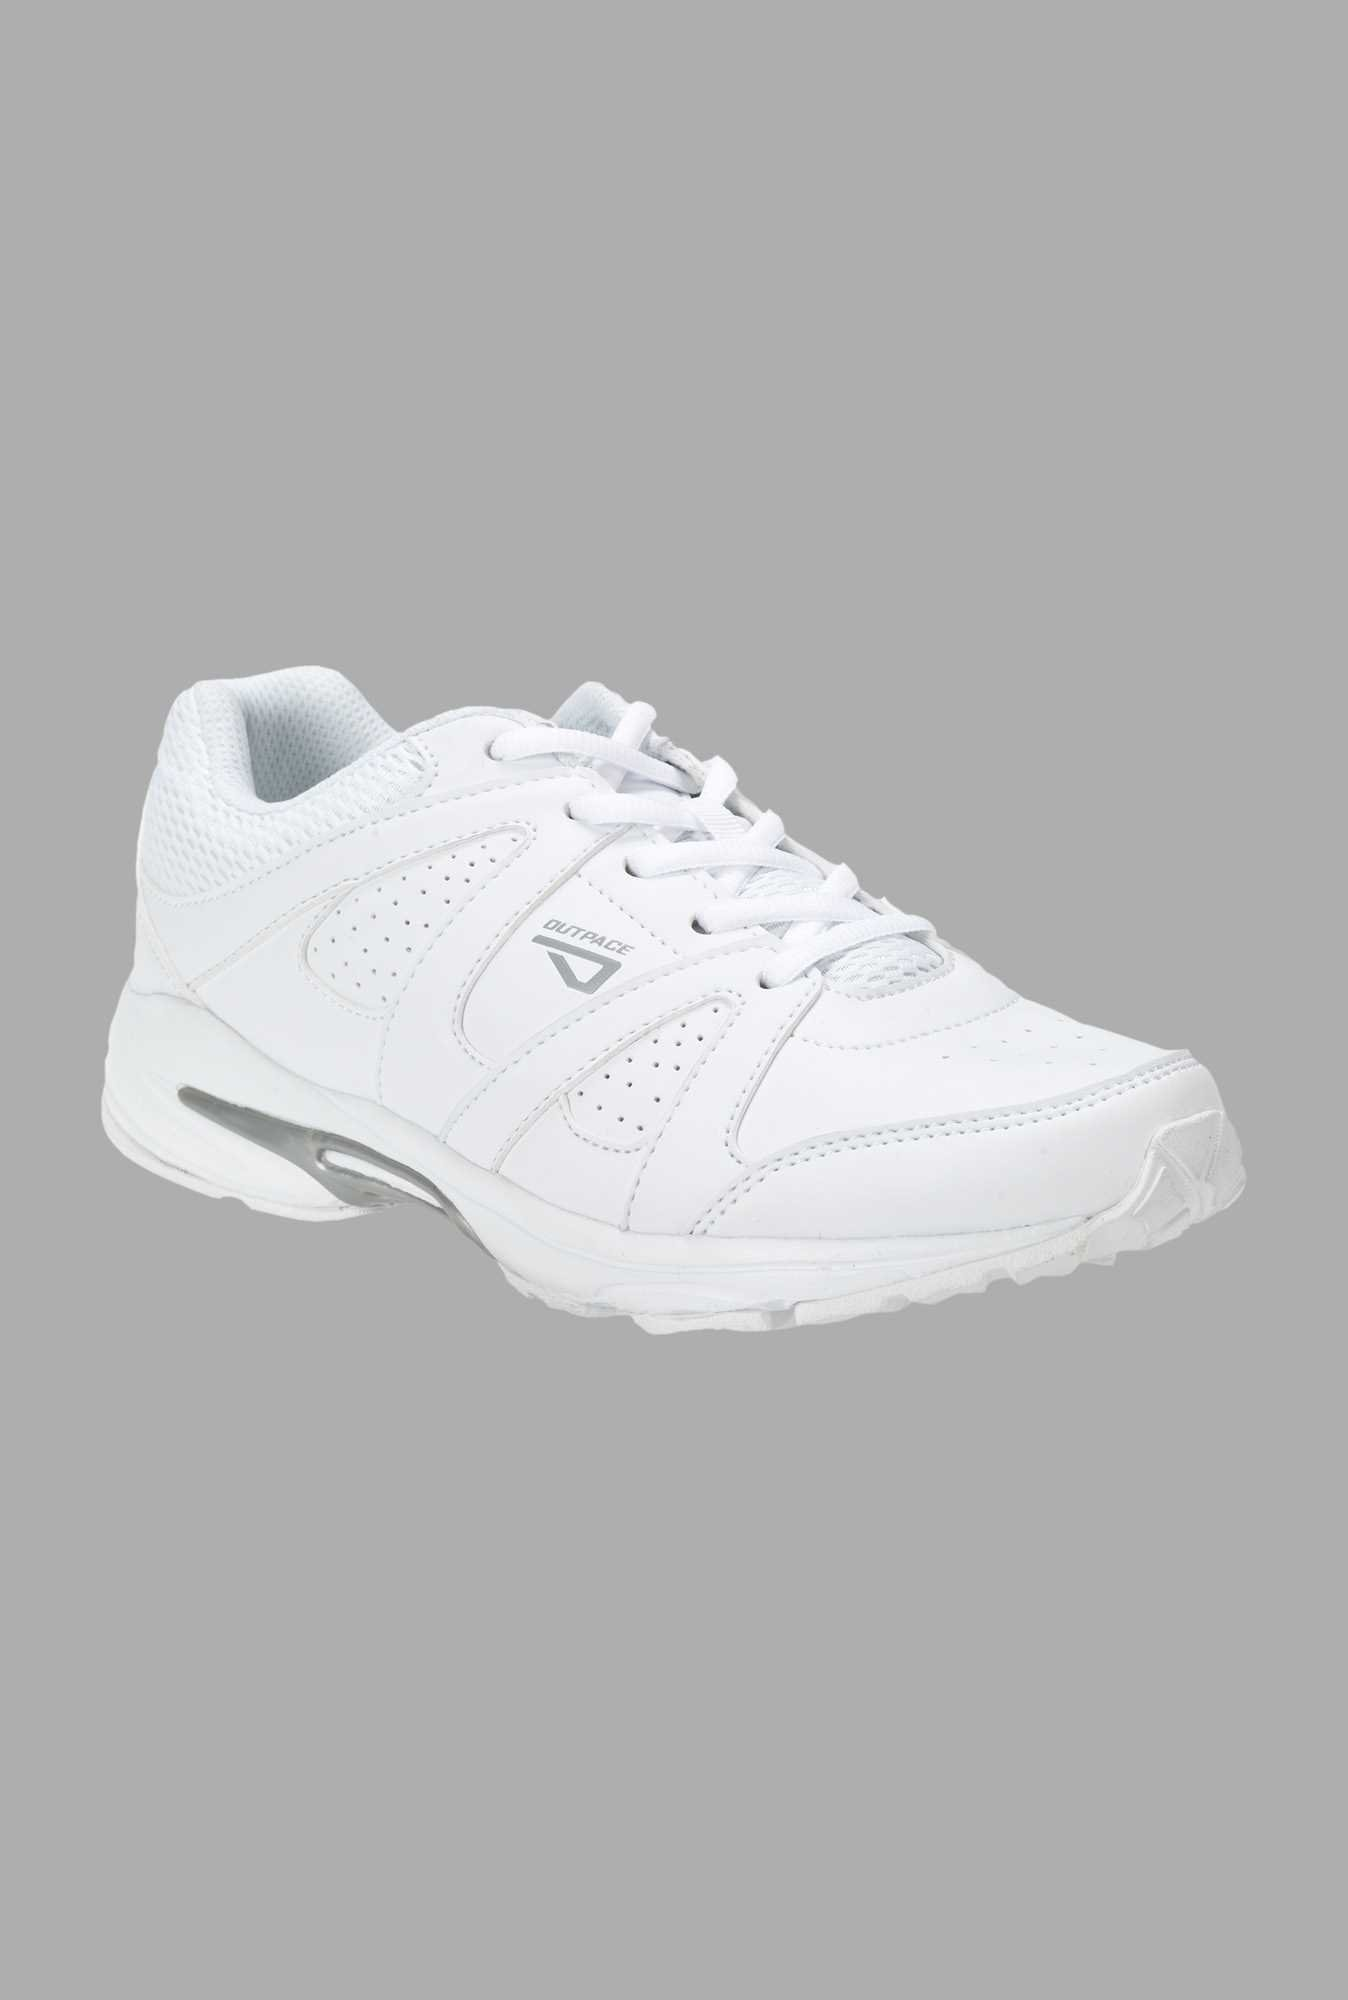 Outpace White Training Shoes